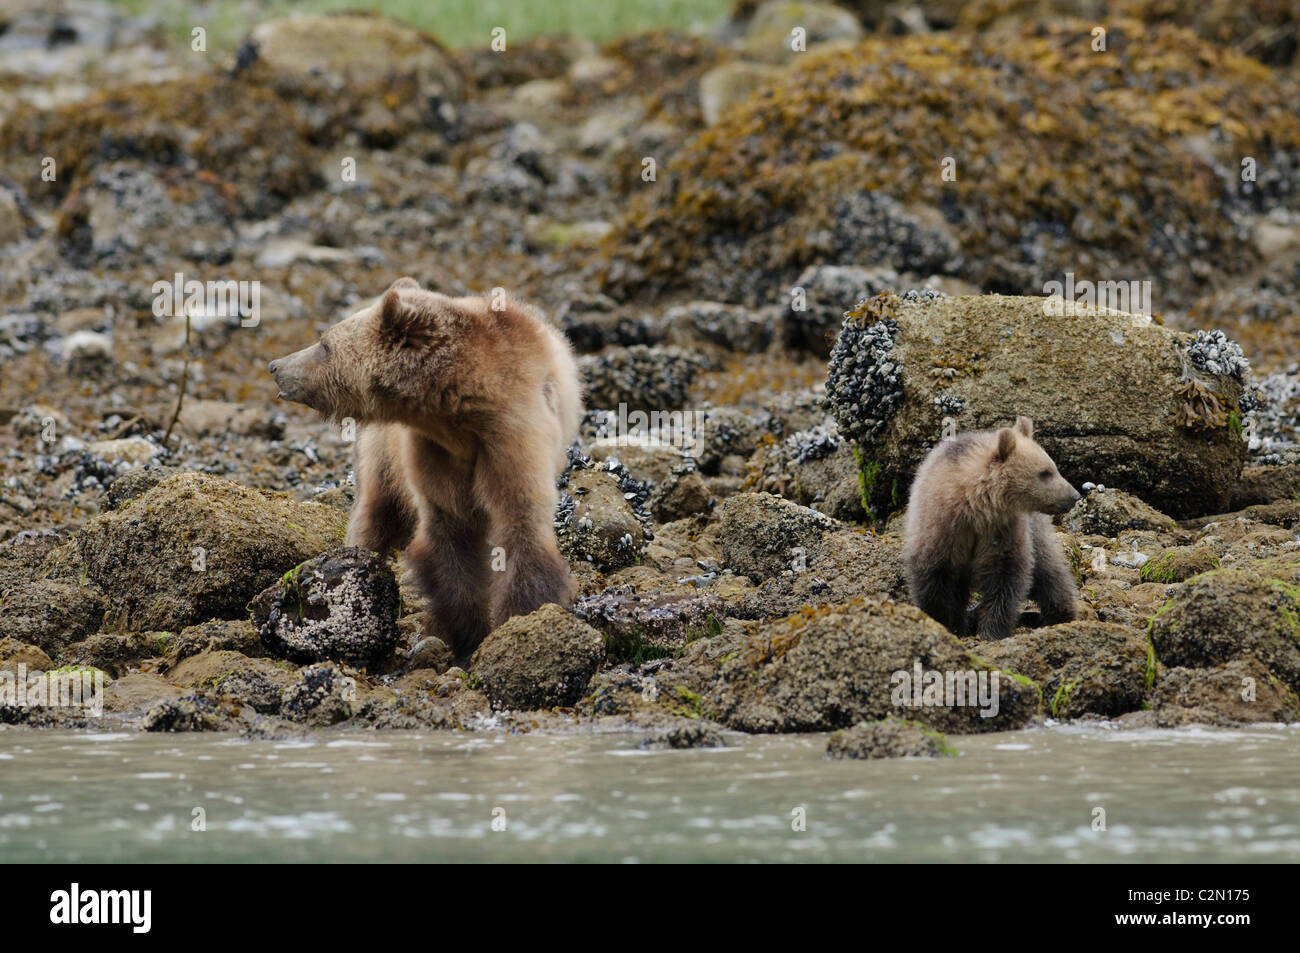 Grizzly bear with cub of year, Knight Inlet, British Columbia, Canada - Stock Image